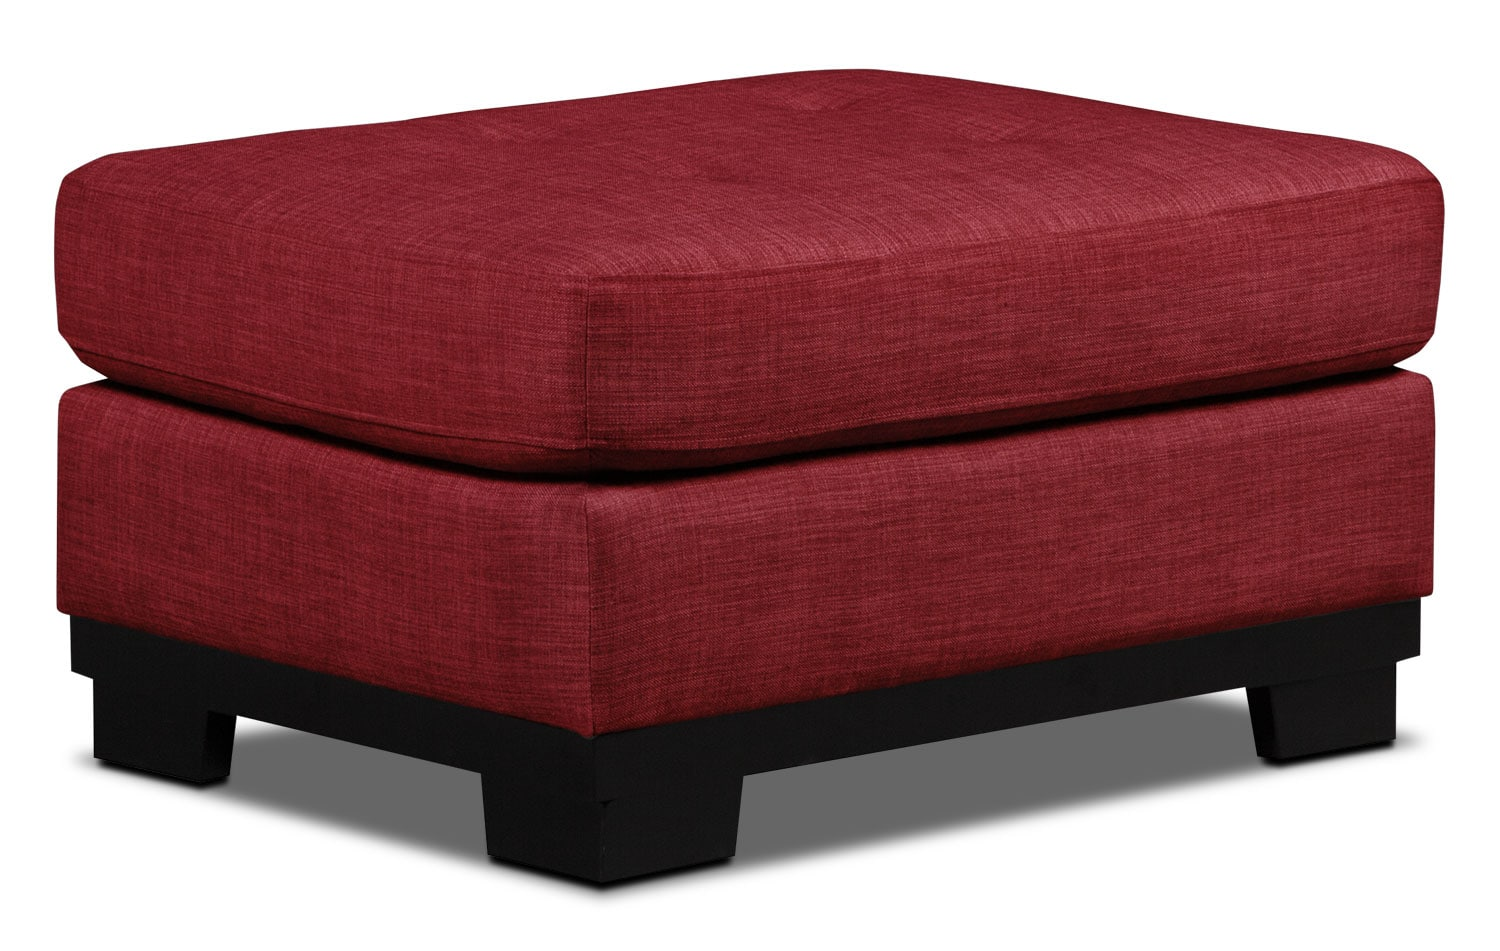 Living Room Furniture - Oakdale Linen-Look Fabric Ottoman – Cherry